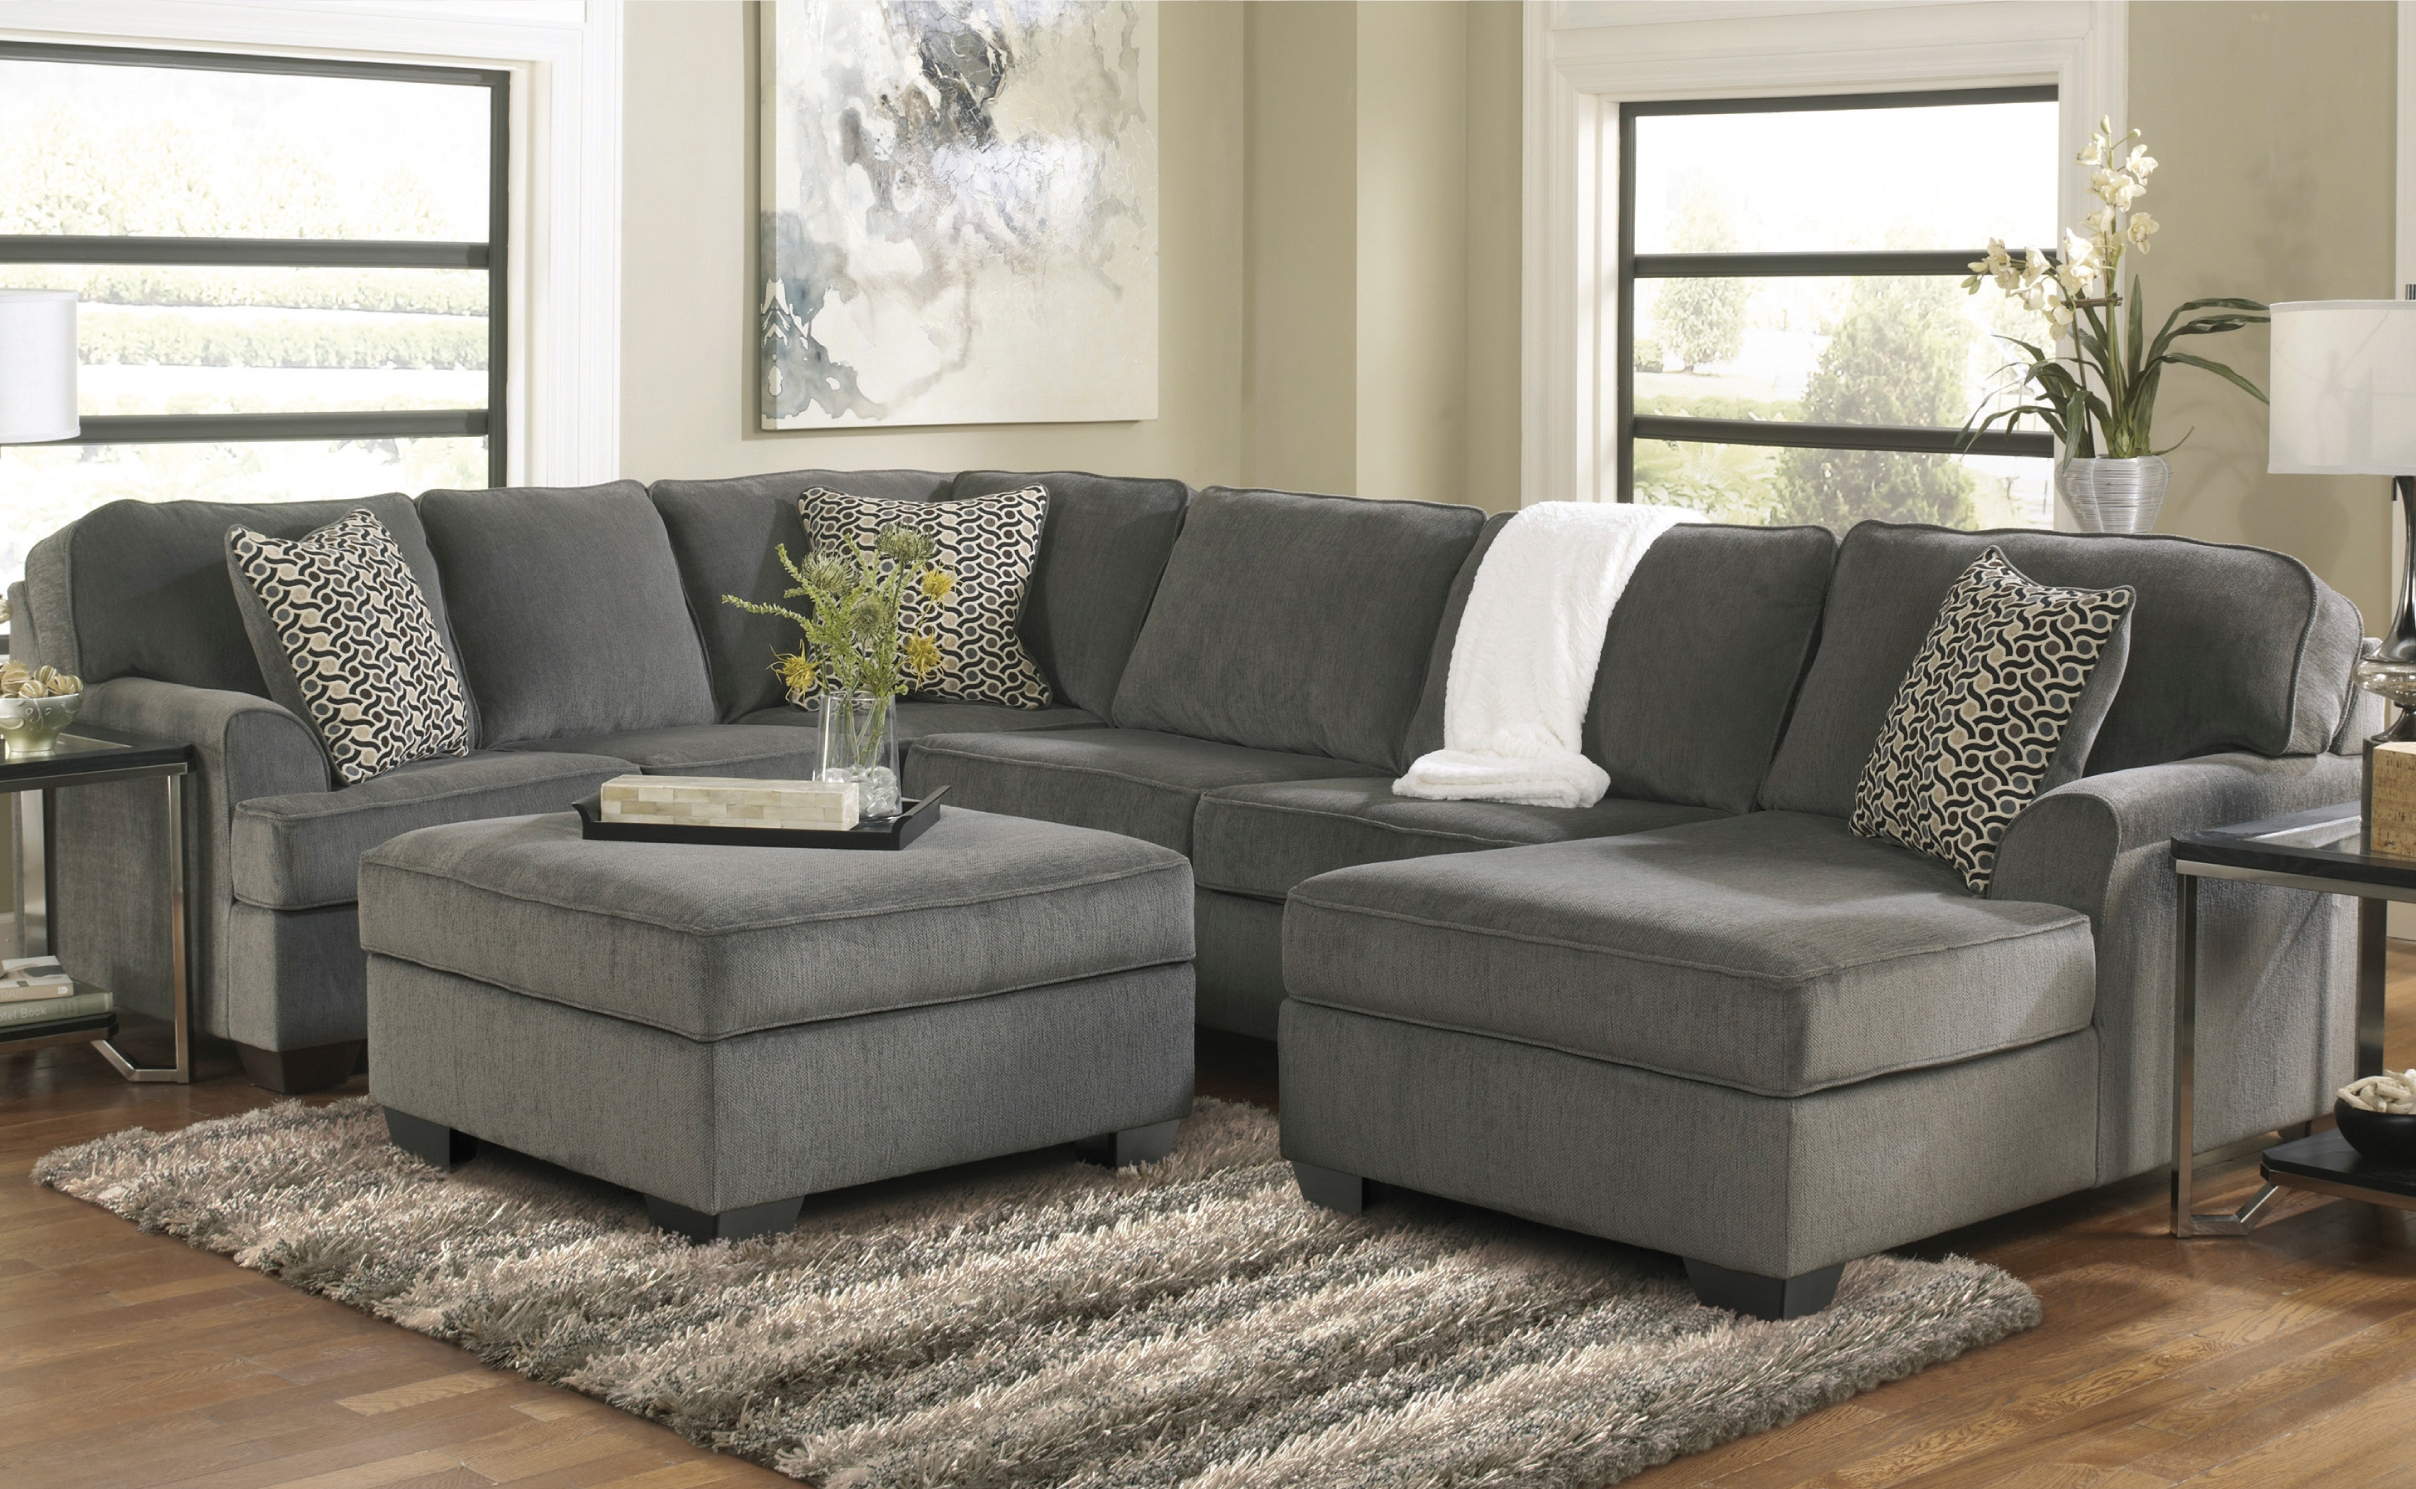 Clearance Furniture In Chicago Darvin Clearance Regarding Closeout Sectional Sofas (Image 1 of 15)